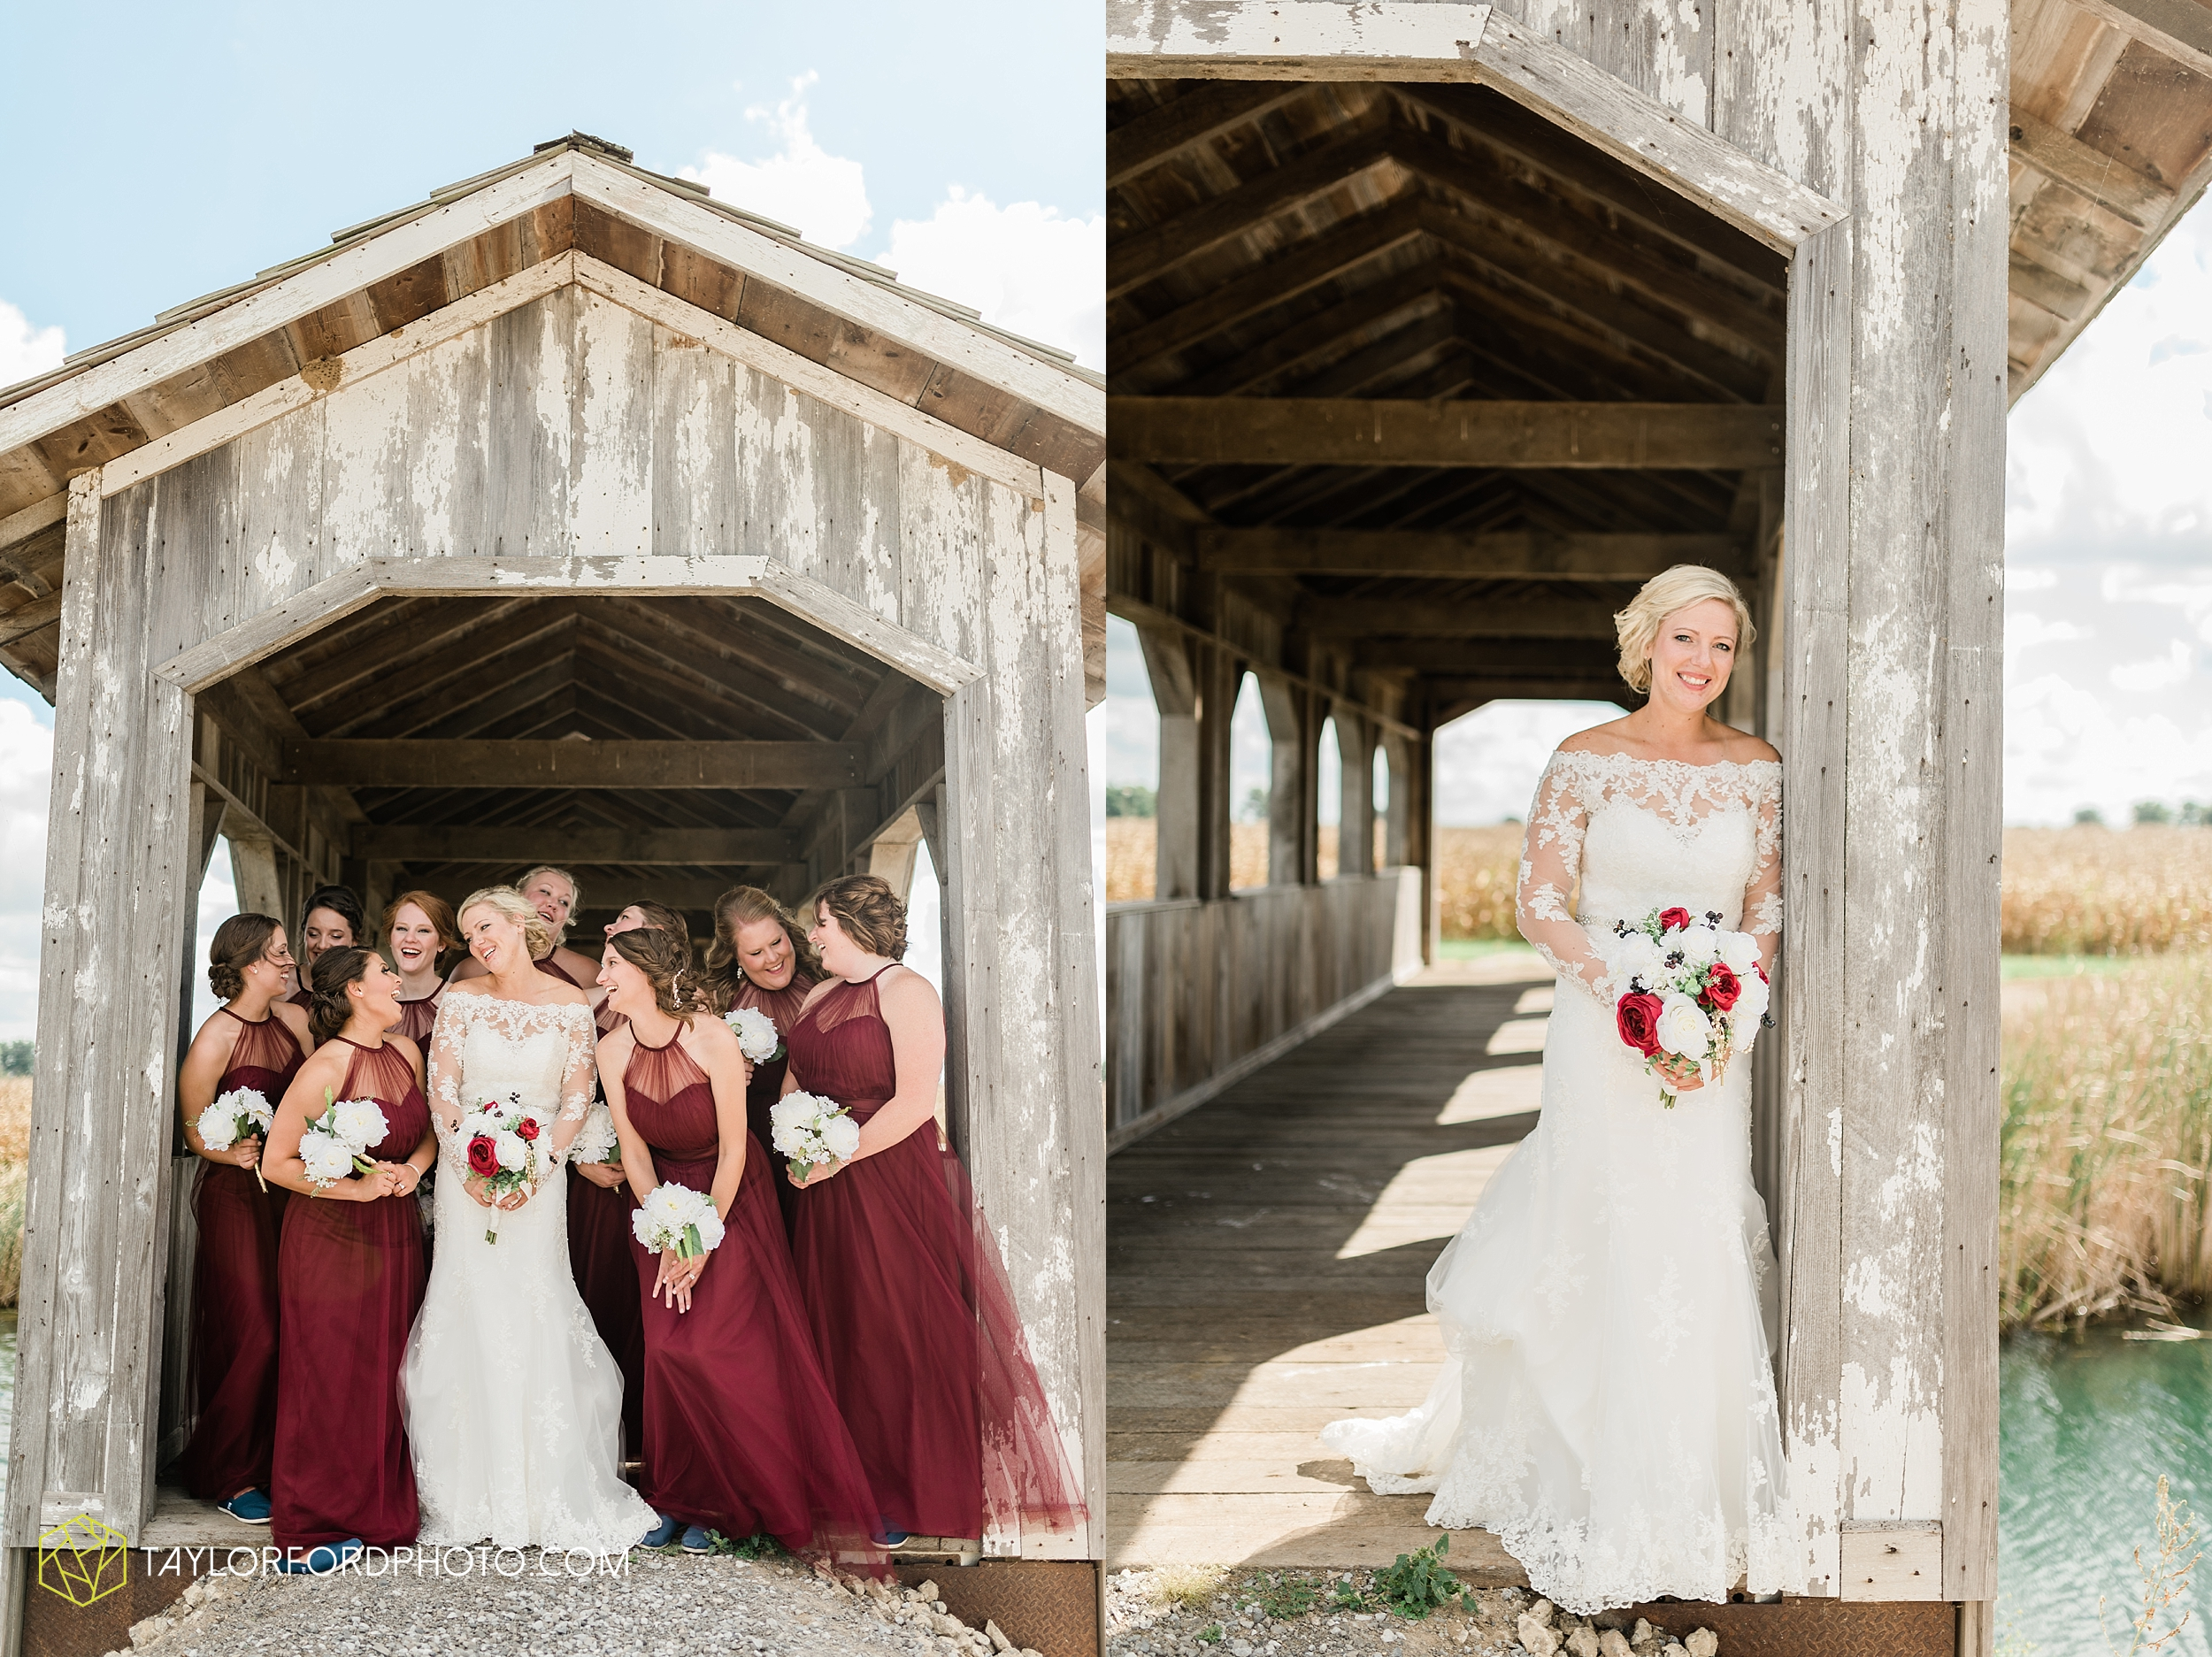 gayle-rayman-mike-steele-ottoville-ohio-wedding-immaculate-conception-parish-center-wedding-sycamore-lake-winery-wannamachers-photographer-taylor-ford-photography_0405.jpg